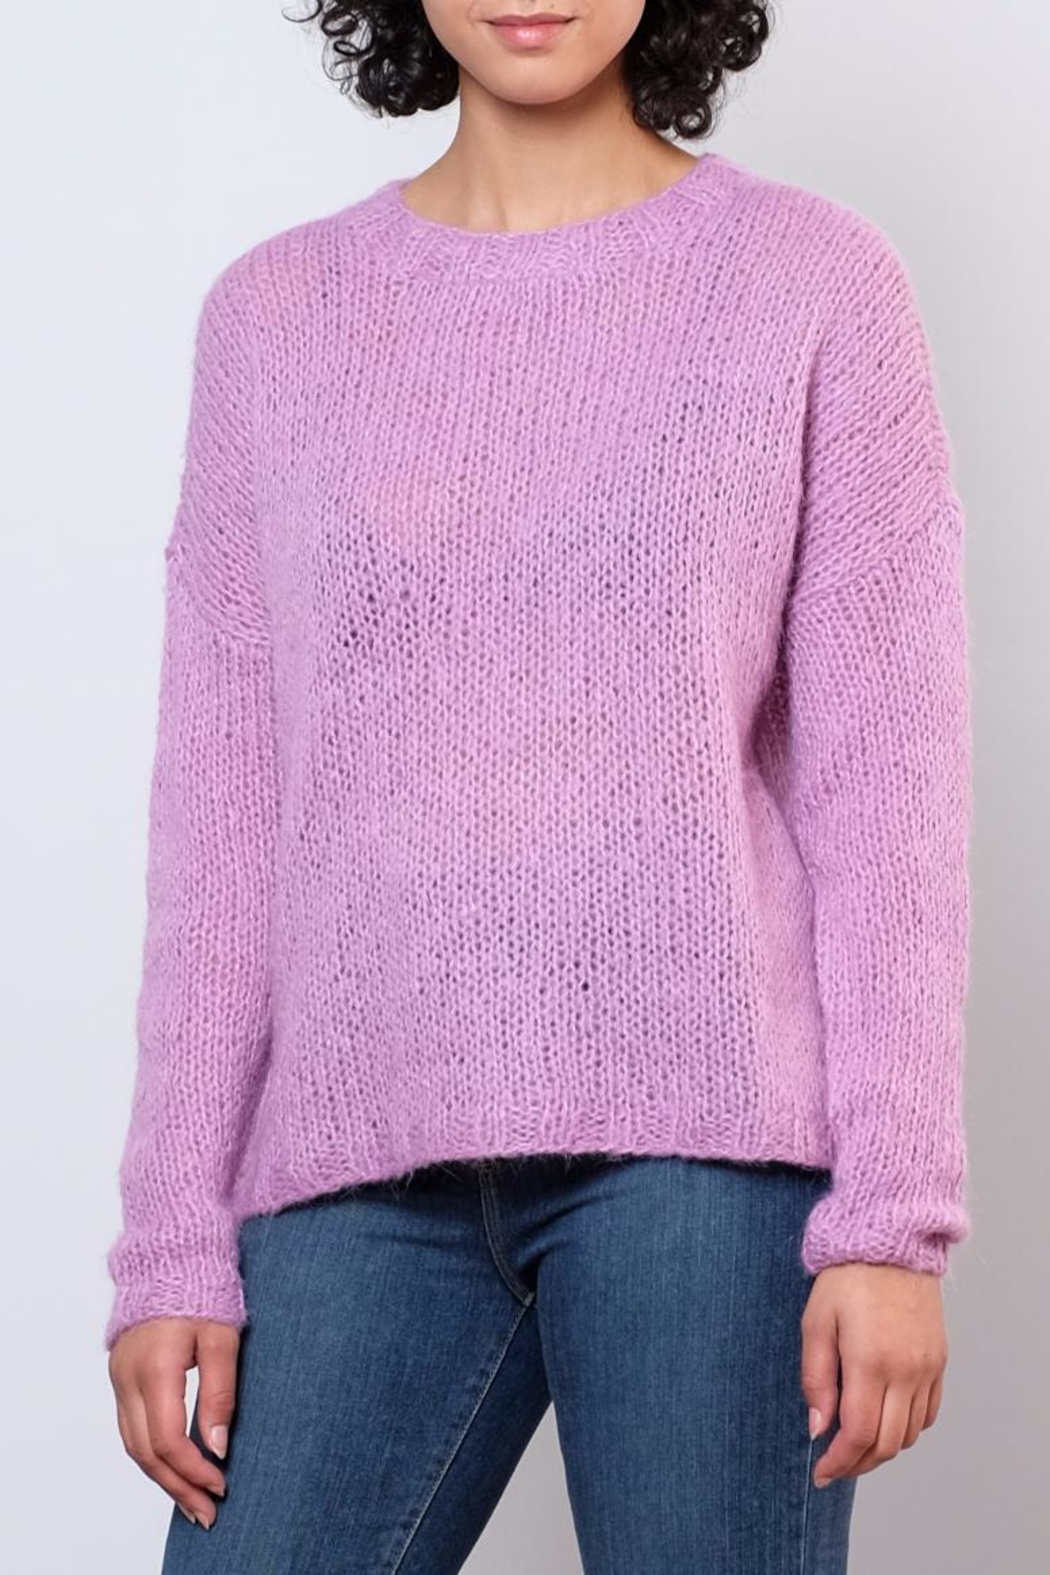 Noisy May Janis Knit Pullover Top - Front Full Image